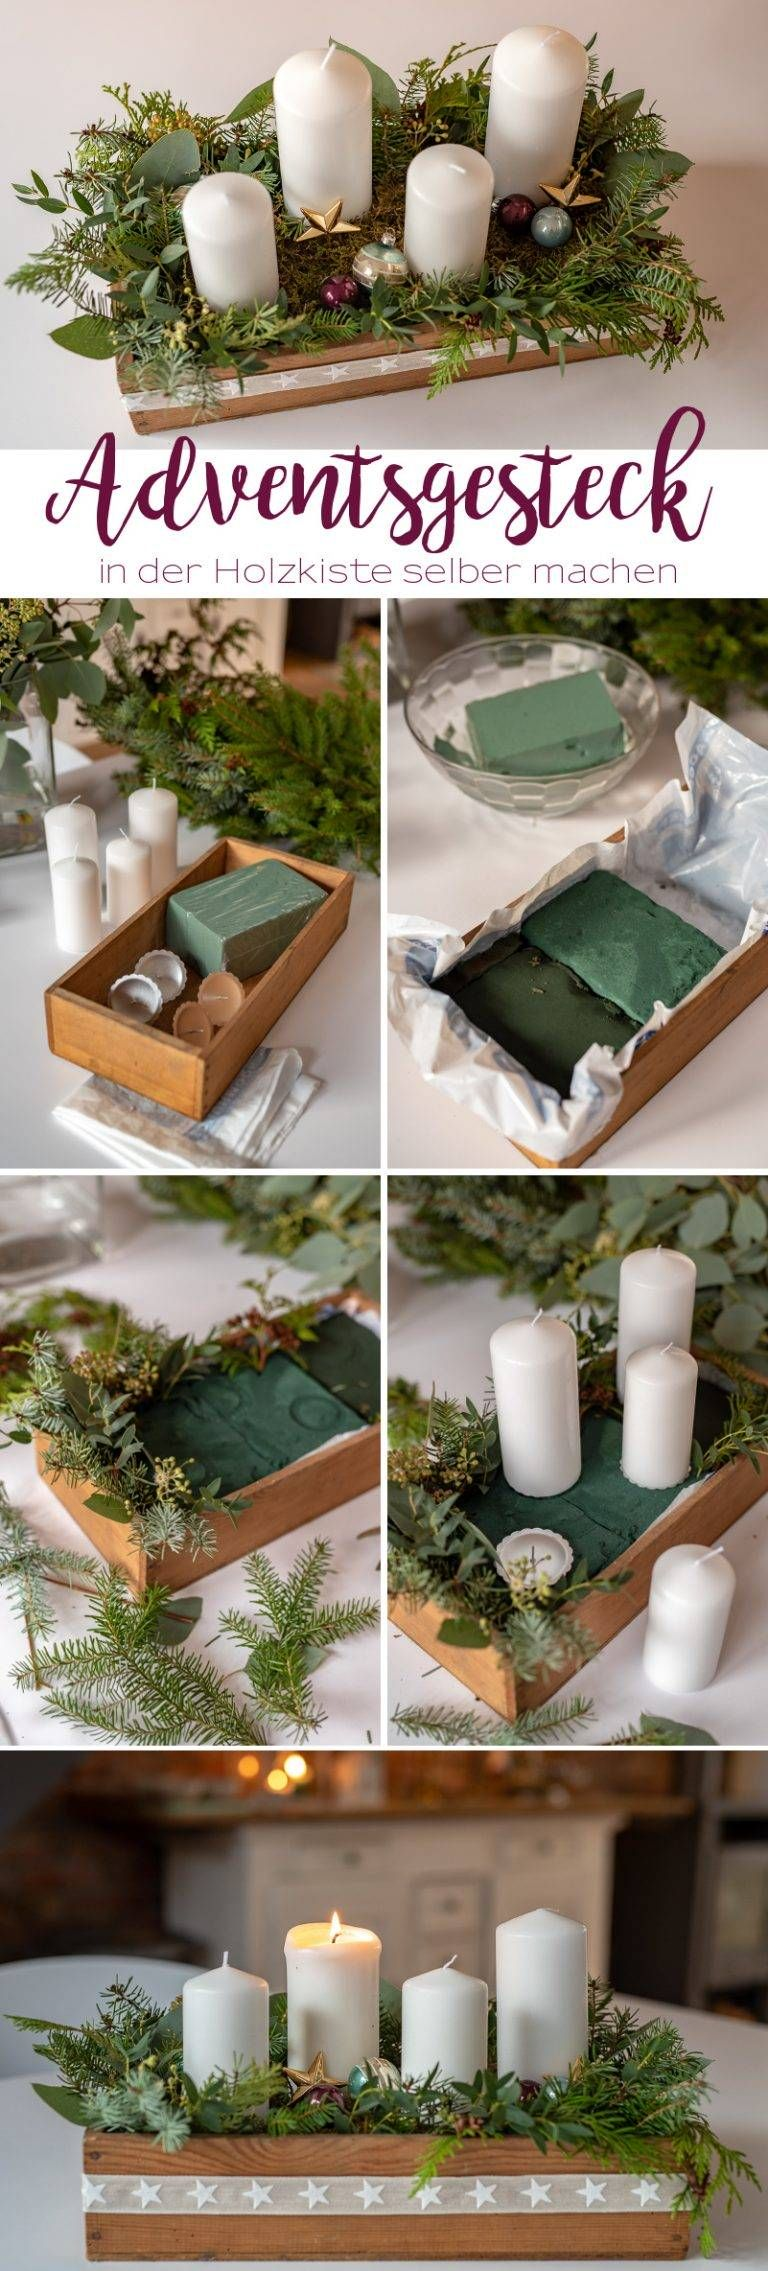 DIY advent wreath: Advent arrangement in a wooden box - Leelah Loves